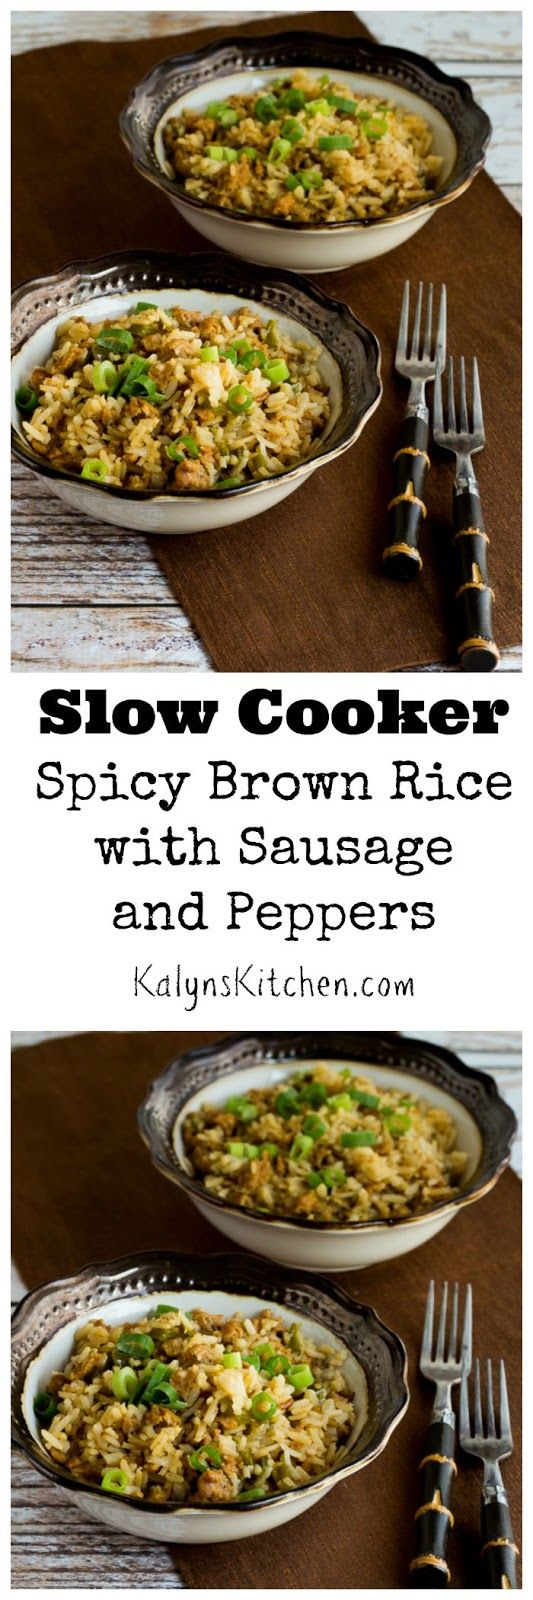 Slow Cooker Spicy Brown Rice with Sausage and Peppers is so delicious. For a lower-carb version of this, I'd just double the amount of sausage and peppers and use the same amount of rice. (Gluten-Free, Can Freeze) [from KalynsKitchen.com]